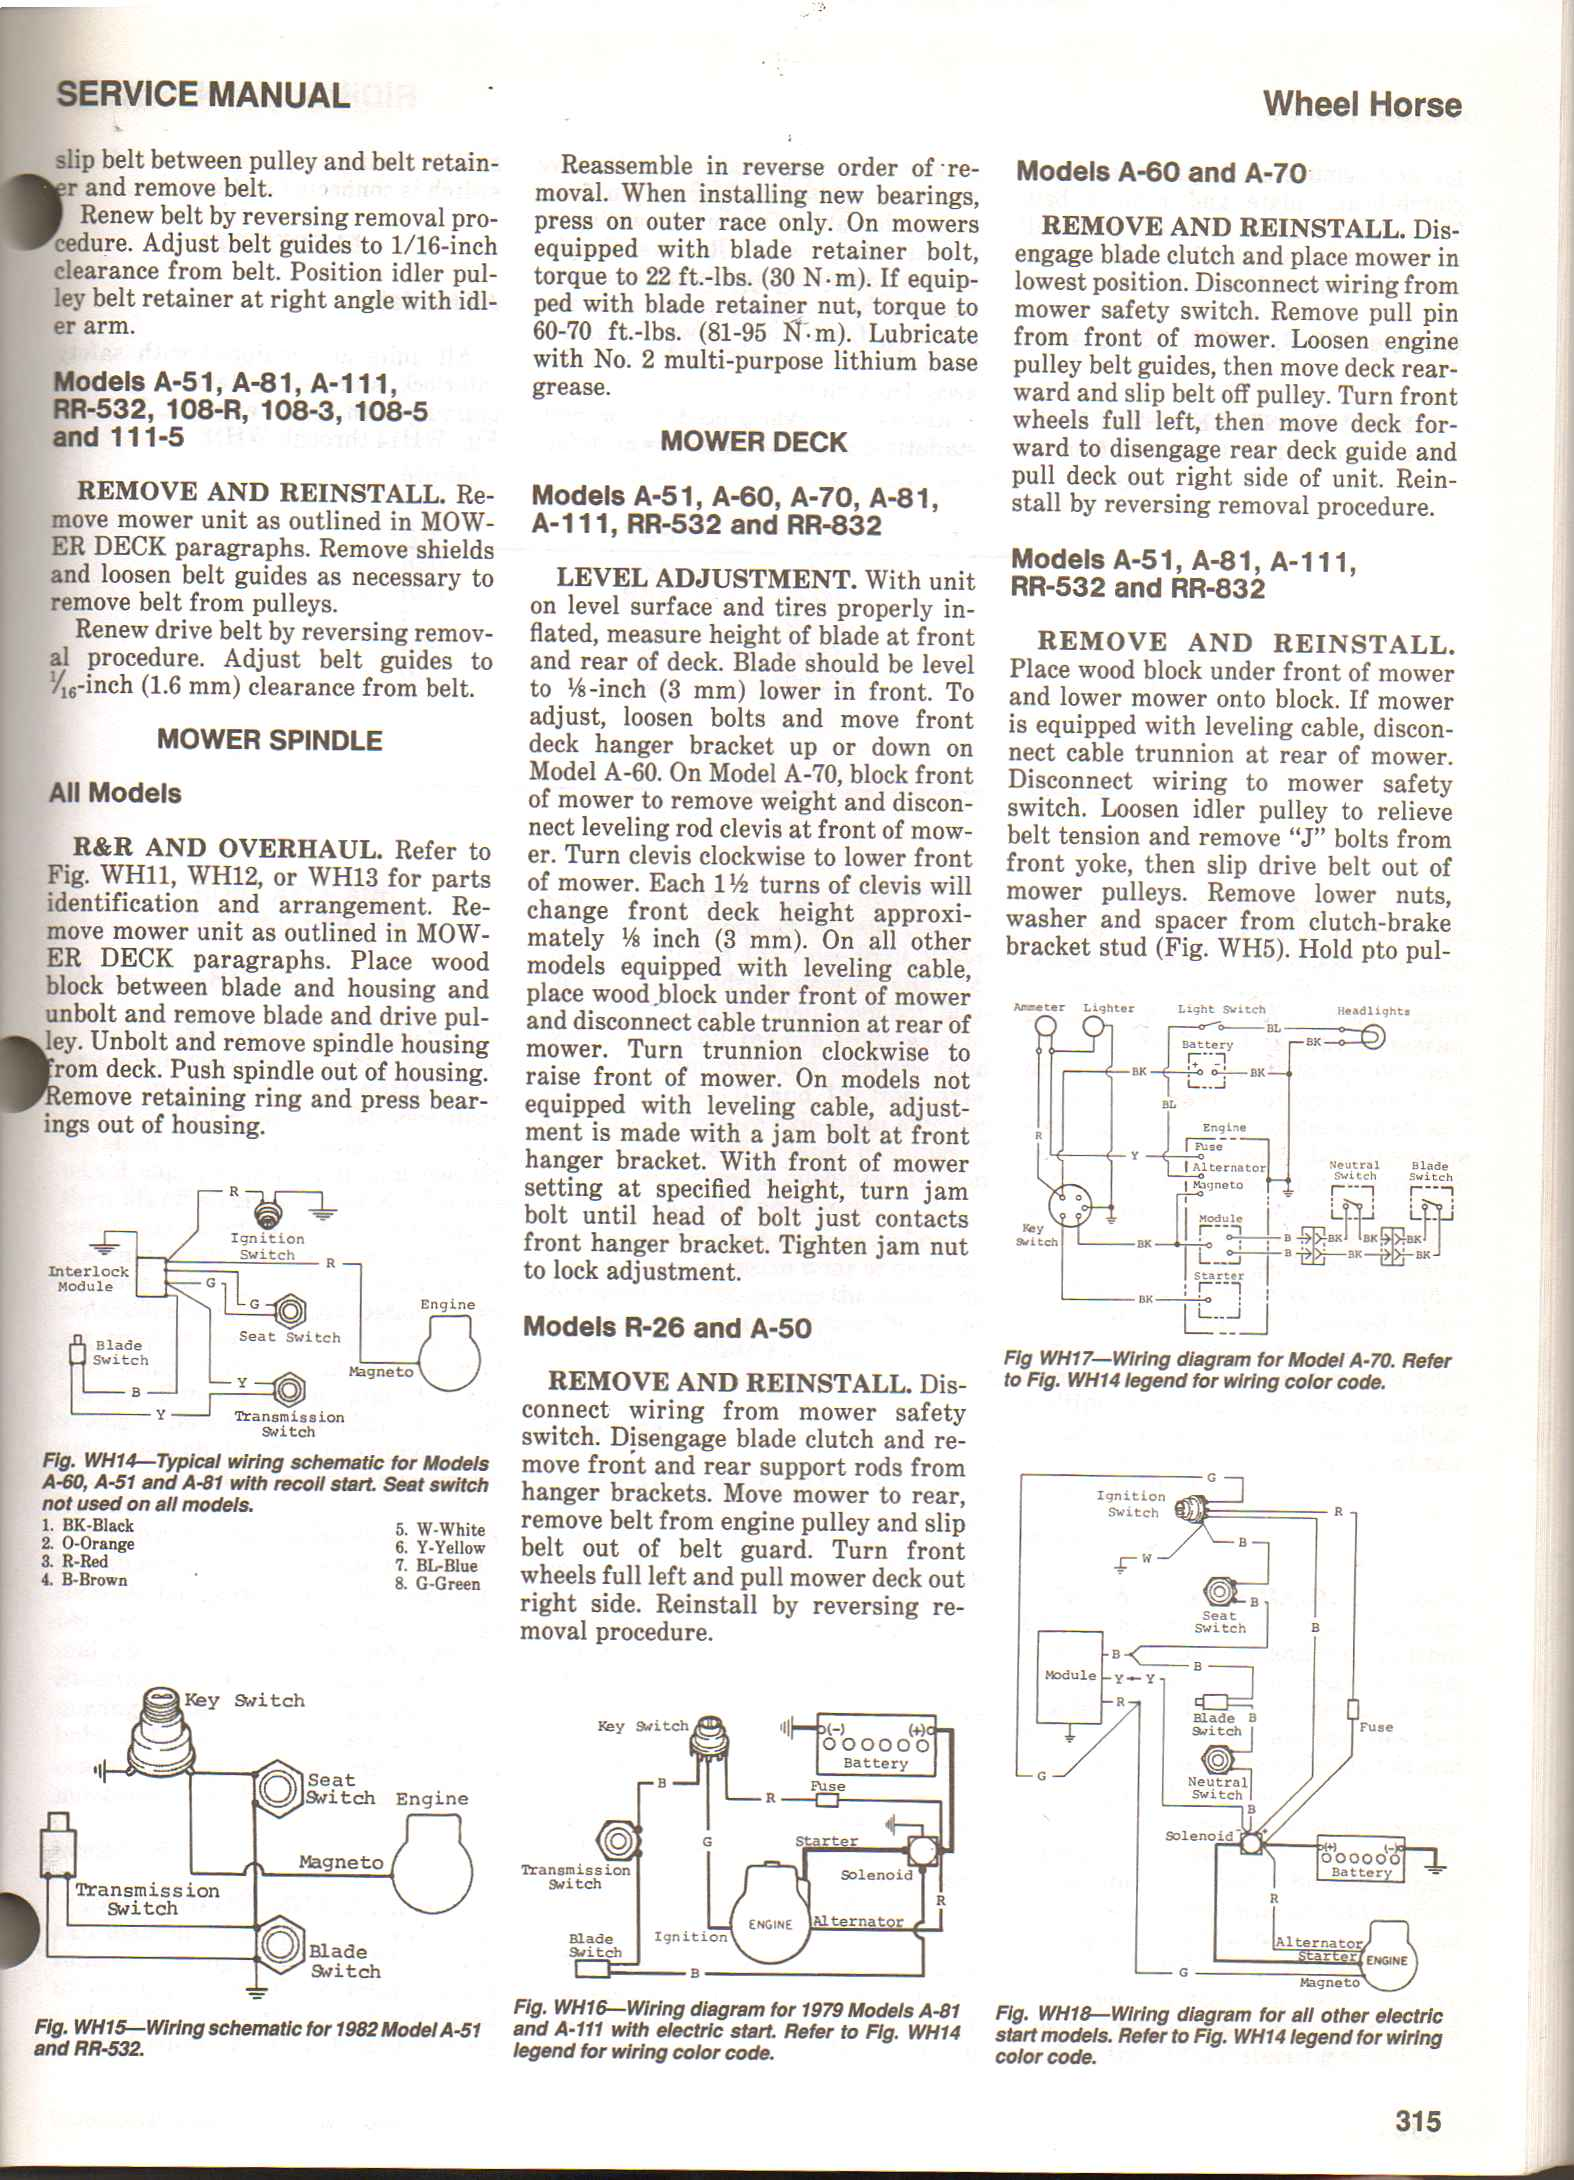 2504m Commando Wiring Diagram Kohler Free For You Key Switch Wheel Horse 800 I Think It S A 1972 Need To Engine Harness Small